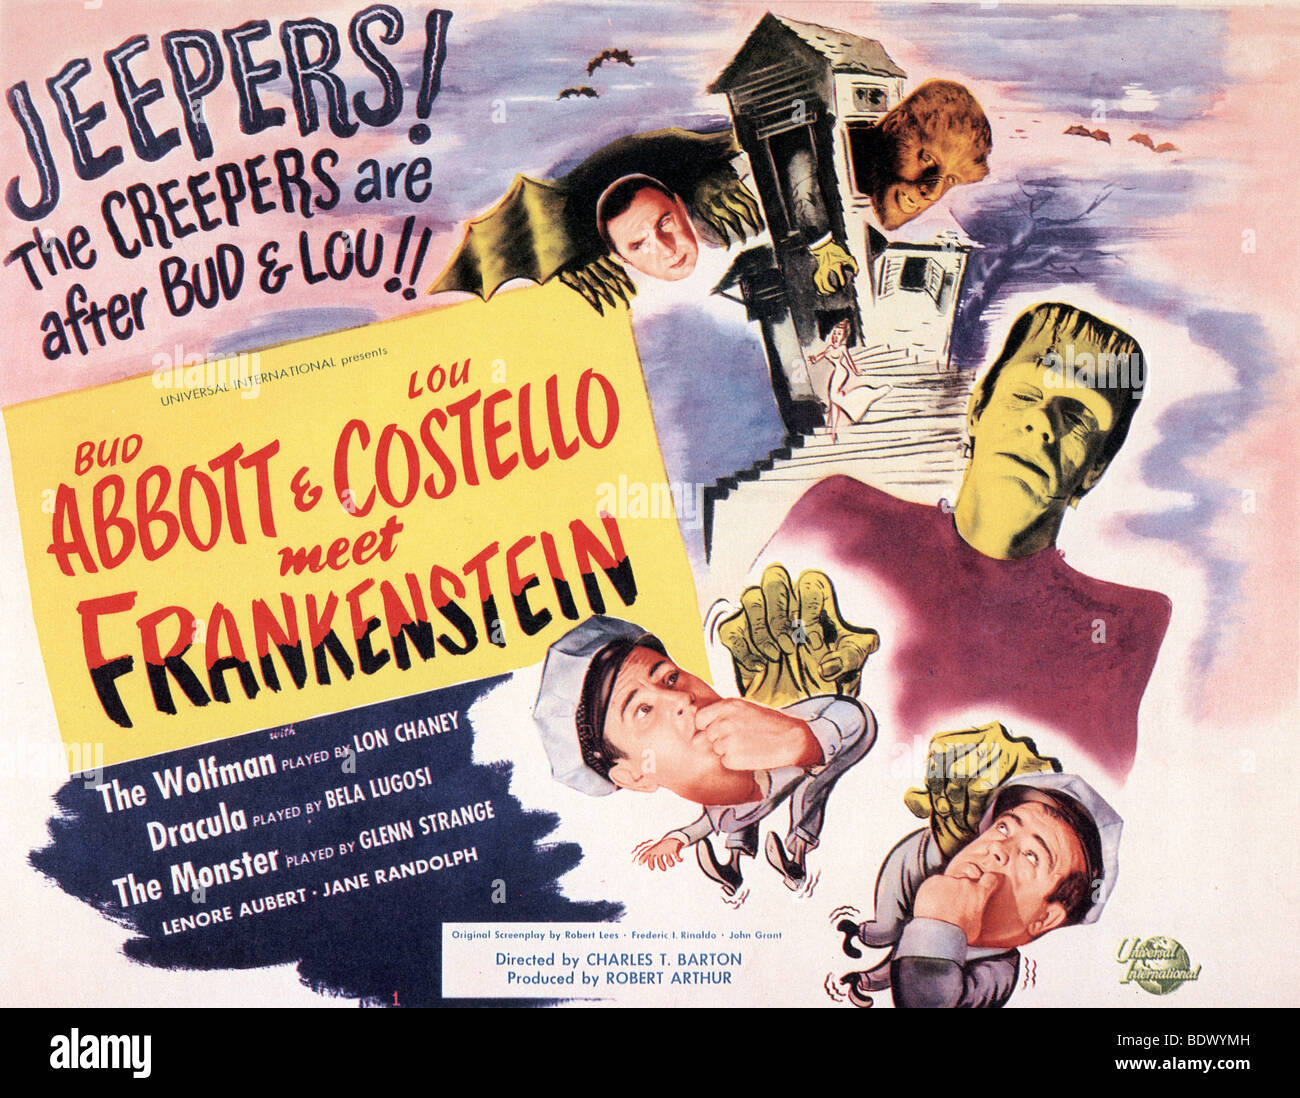 abbott and costello meet frankenstein poster for 1948 u